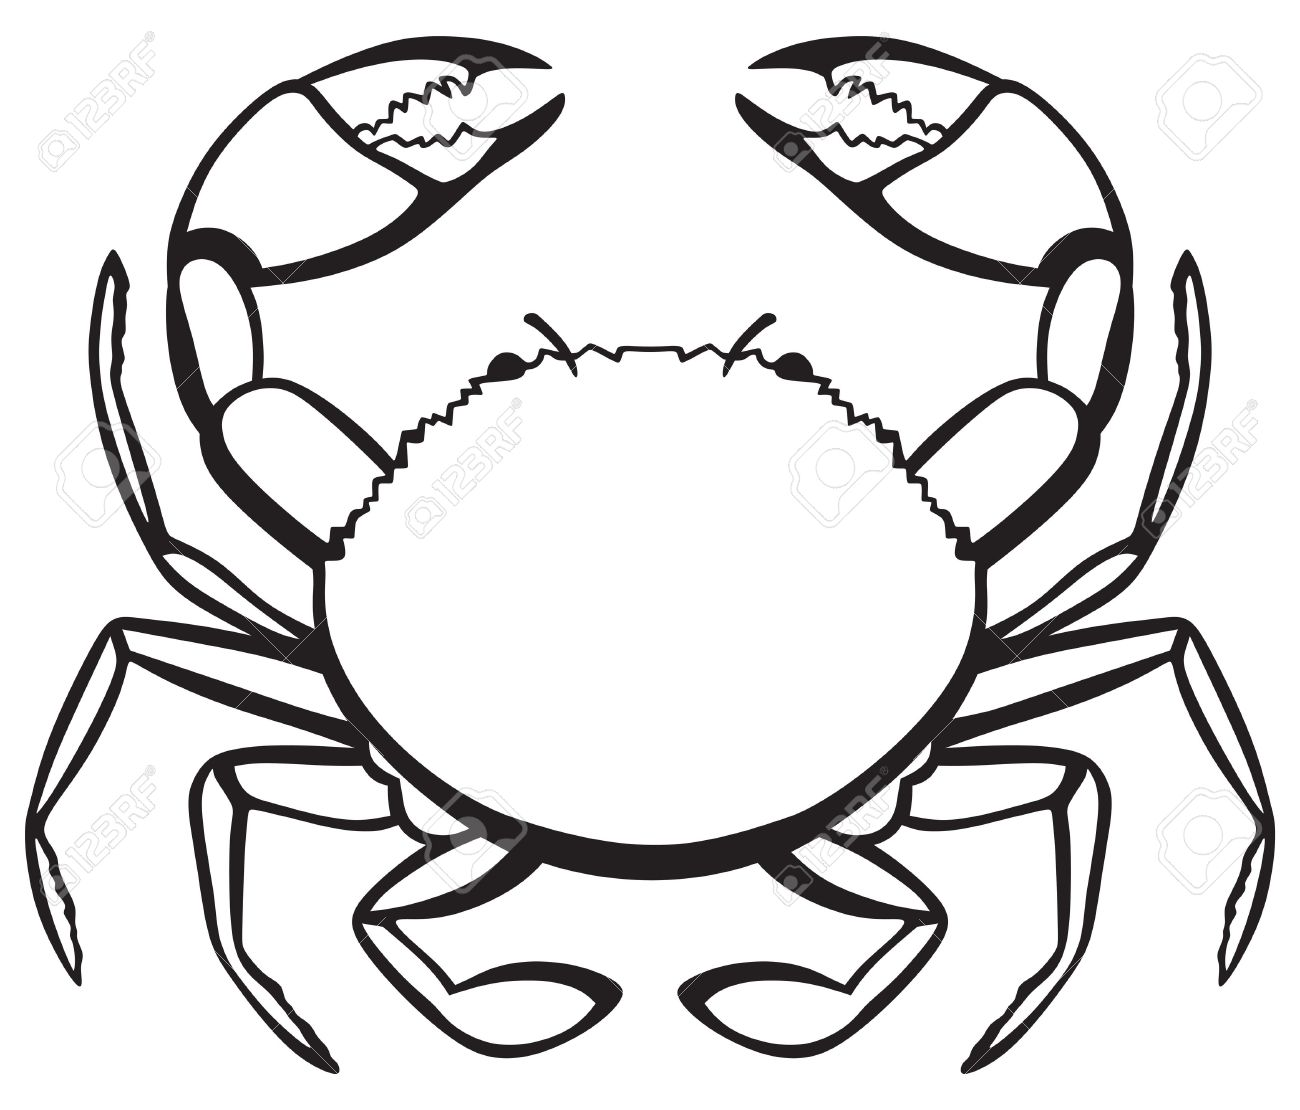 1300x1110 Claw Shaped Clipart